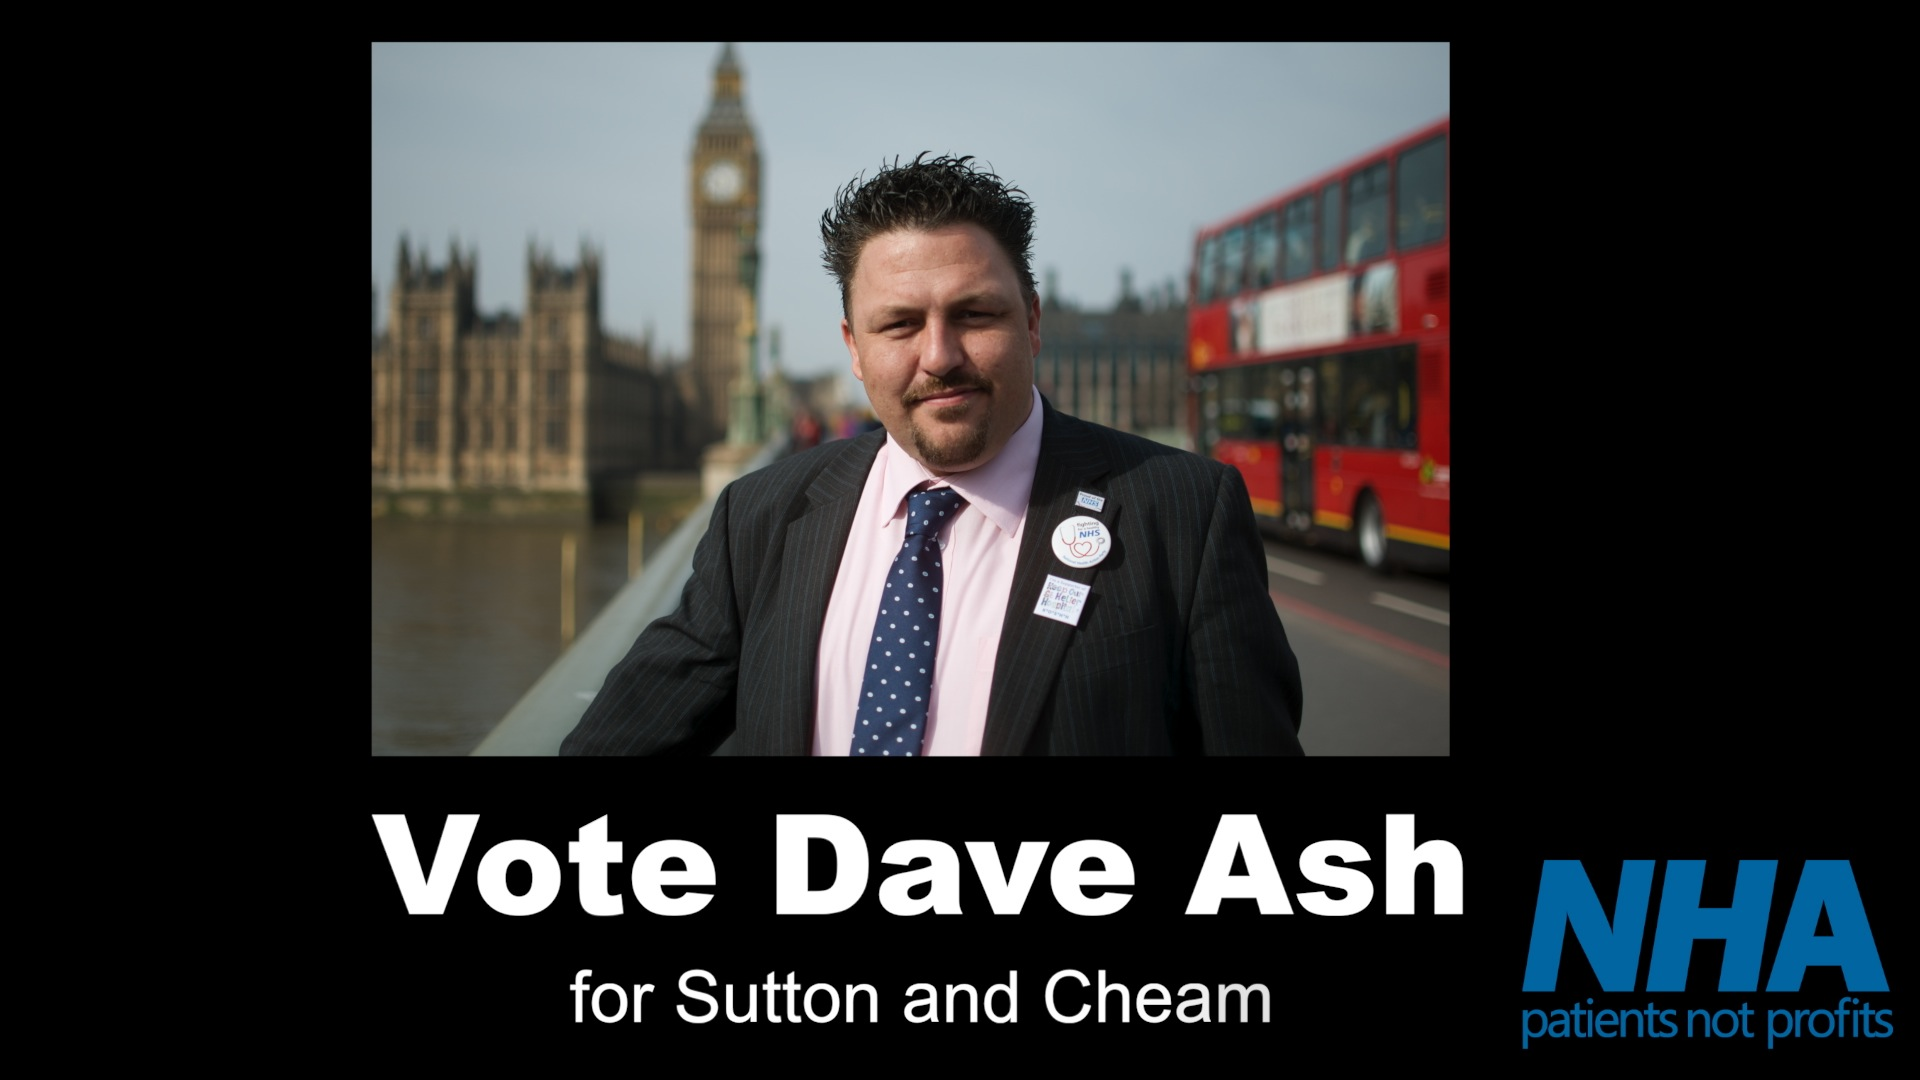 #GE2015 campaign video for Dave Ash, National Health Party candidate